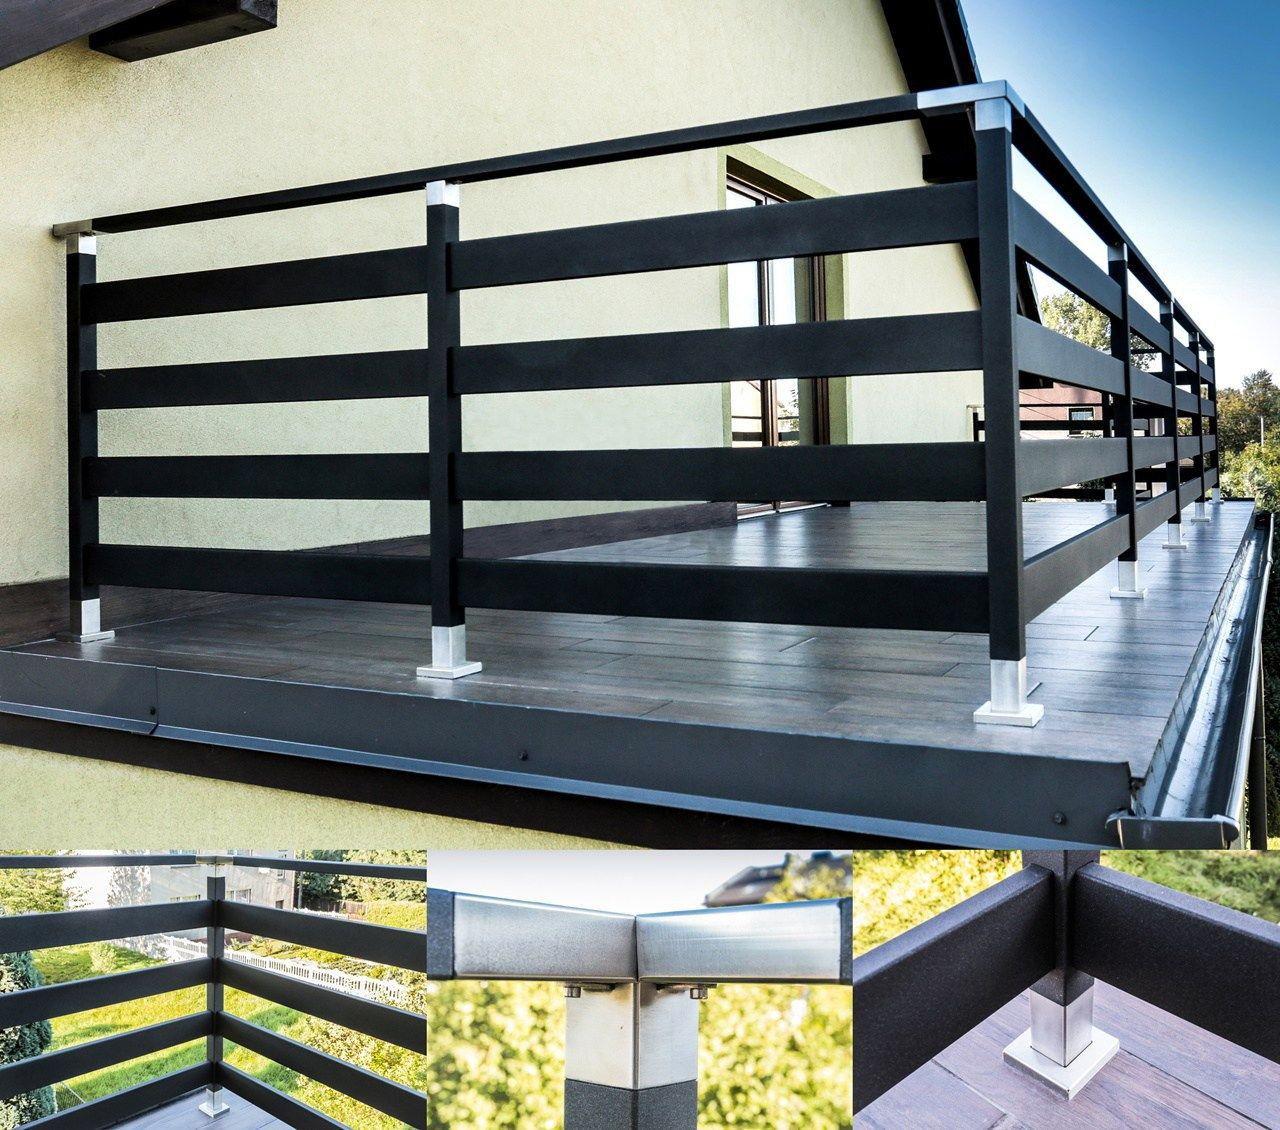 Why Use Stainless Balcony Railings?